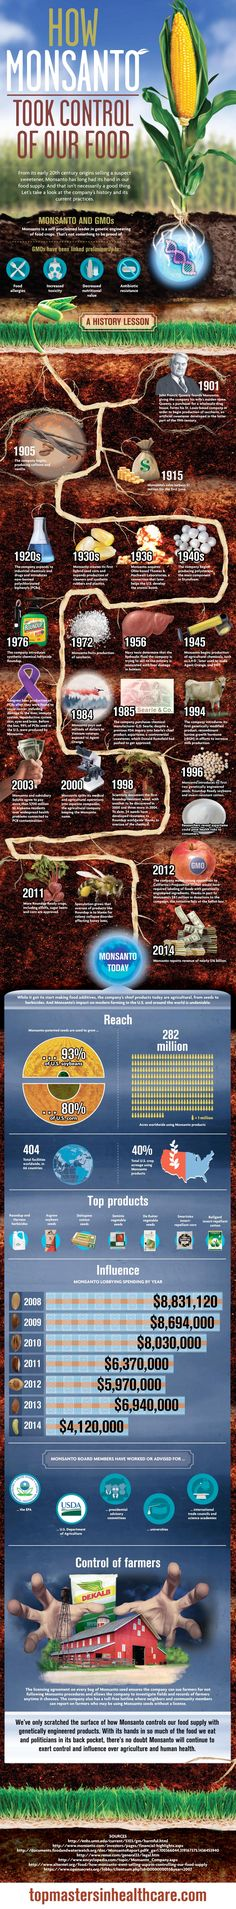 Monsanto's History http://robynobrien.com/how-monsanto-took-over-our-food-system-a-graphical-history/